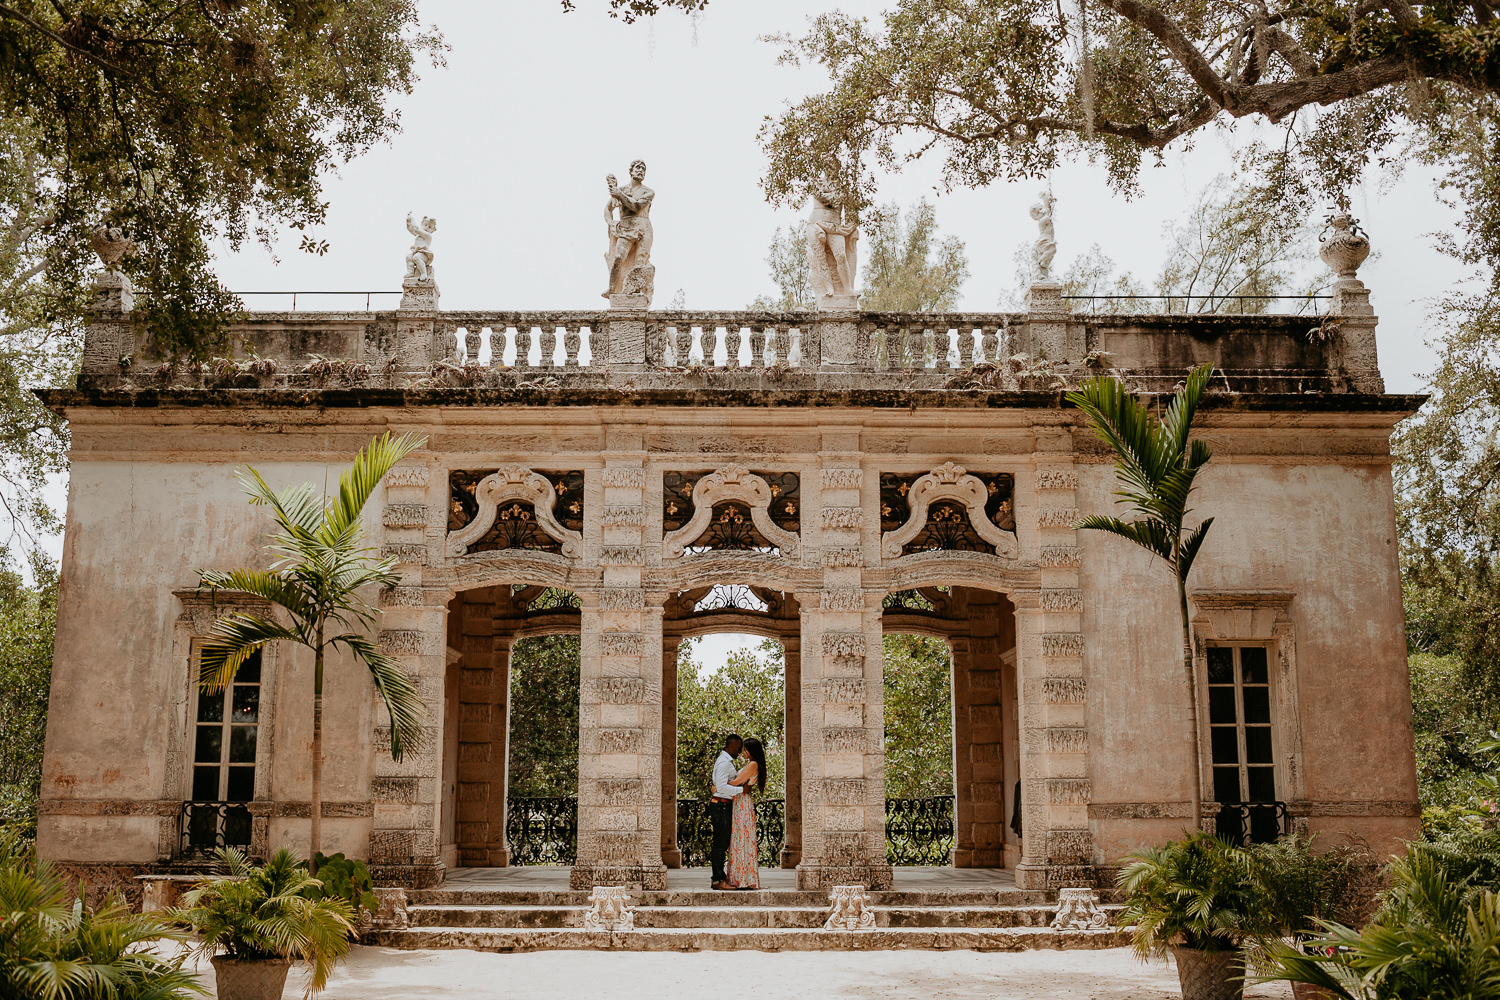 vizcaya stone castle with engaged couple hugging in the middle